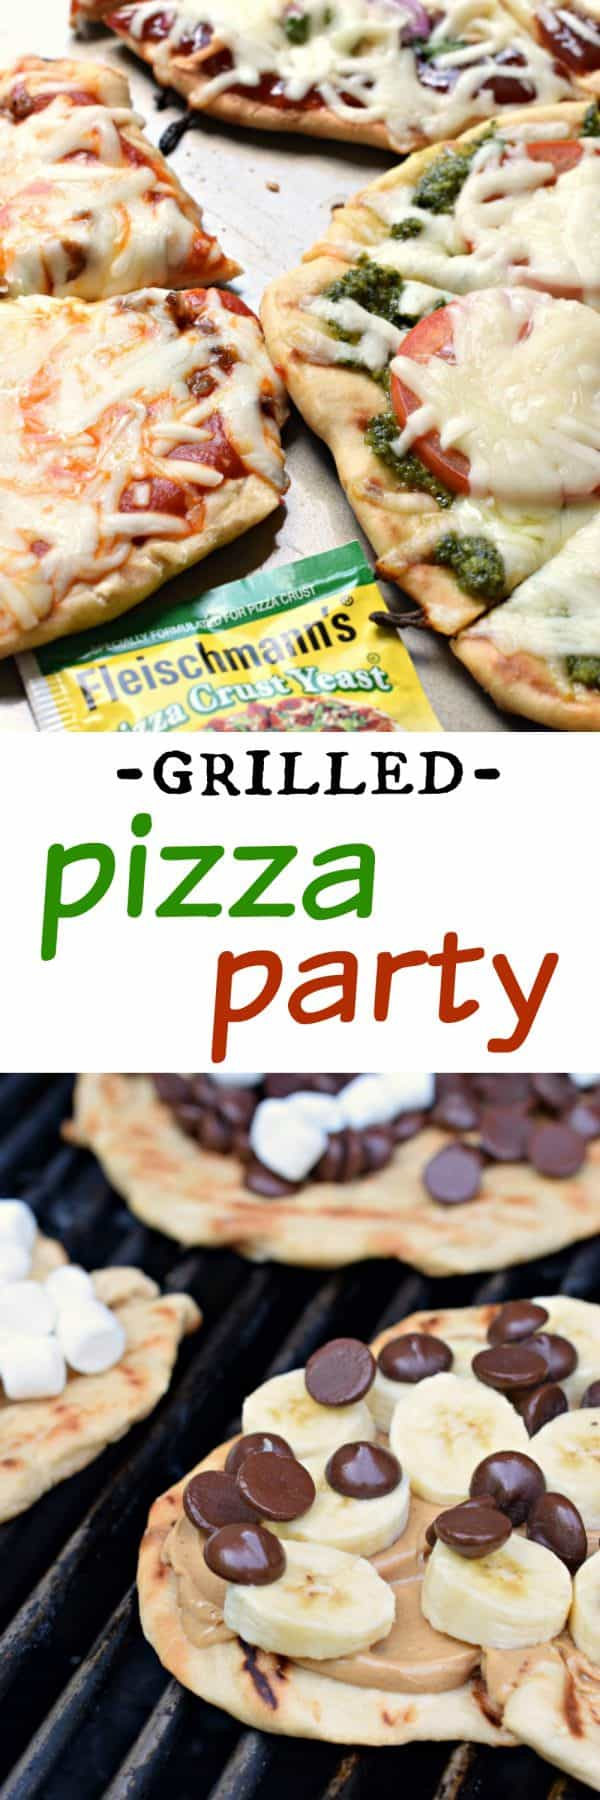 I've got some delicious Grilled Pizza Party Ideas for your next get together. From the homemade pizza crust to all the toppings, I've got you covered with everything sweet and savory!